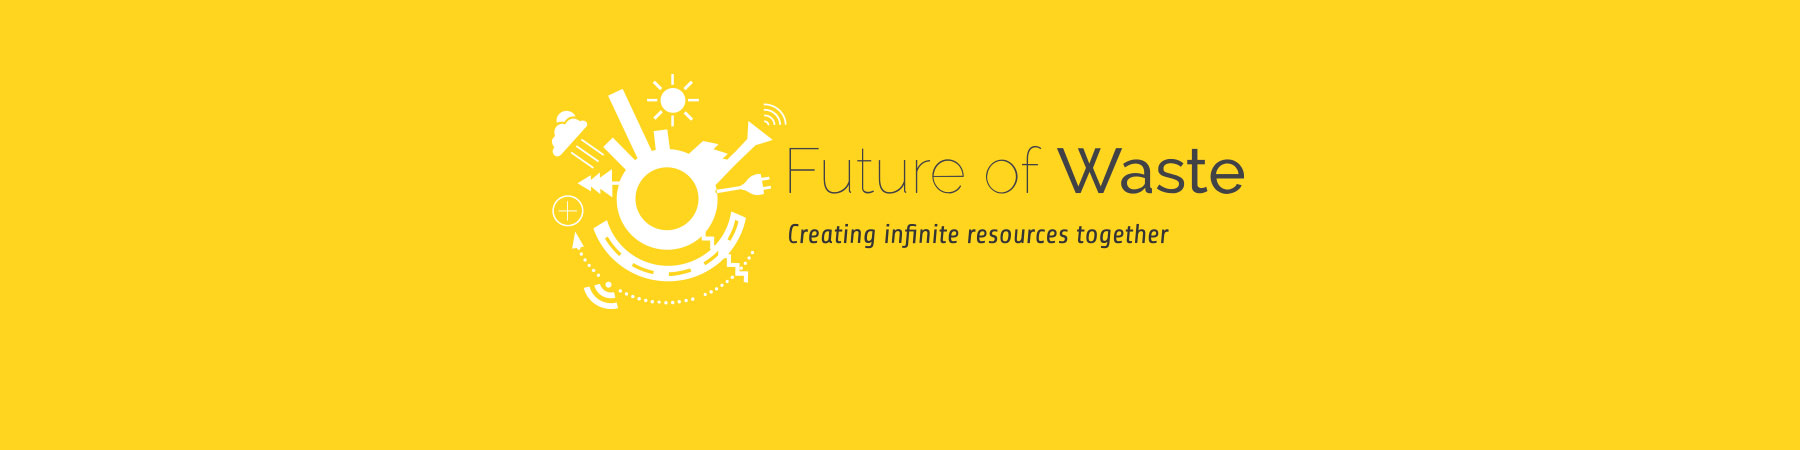 Poster   program   future of waste